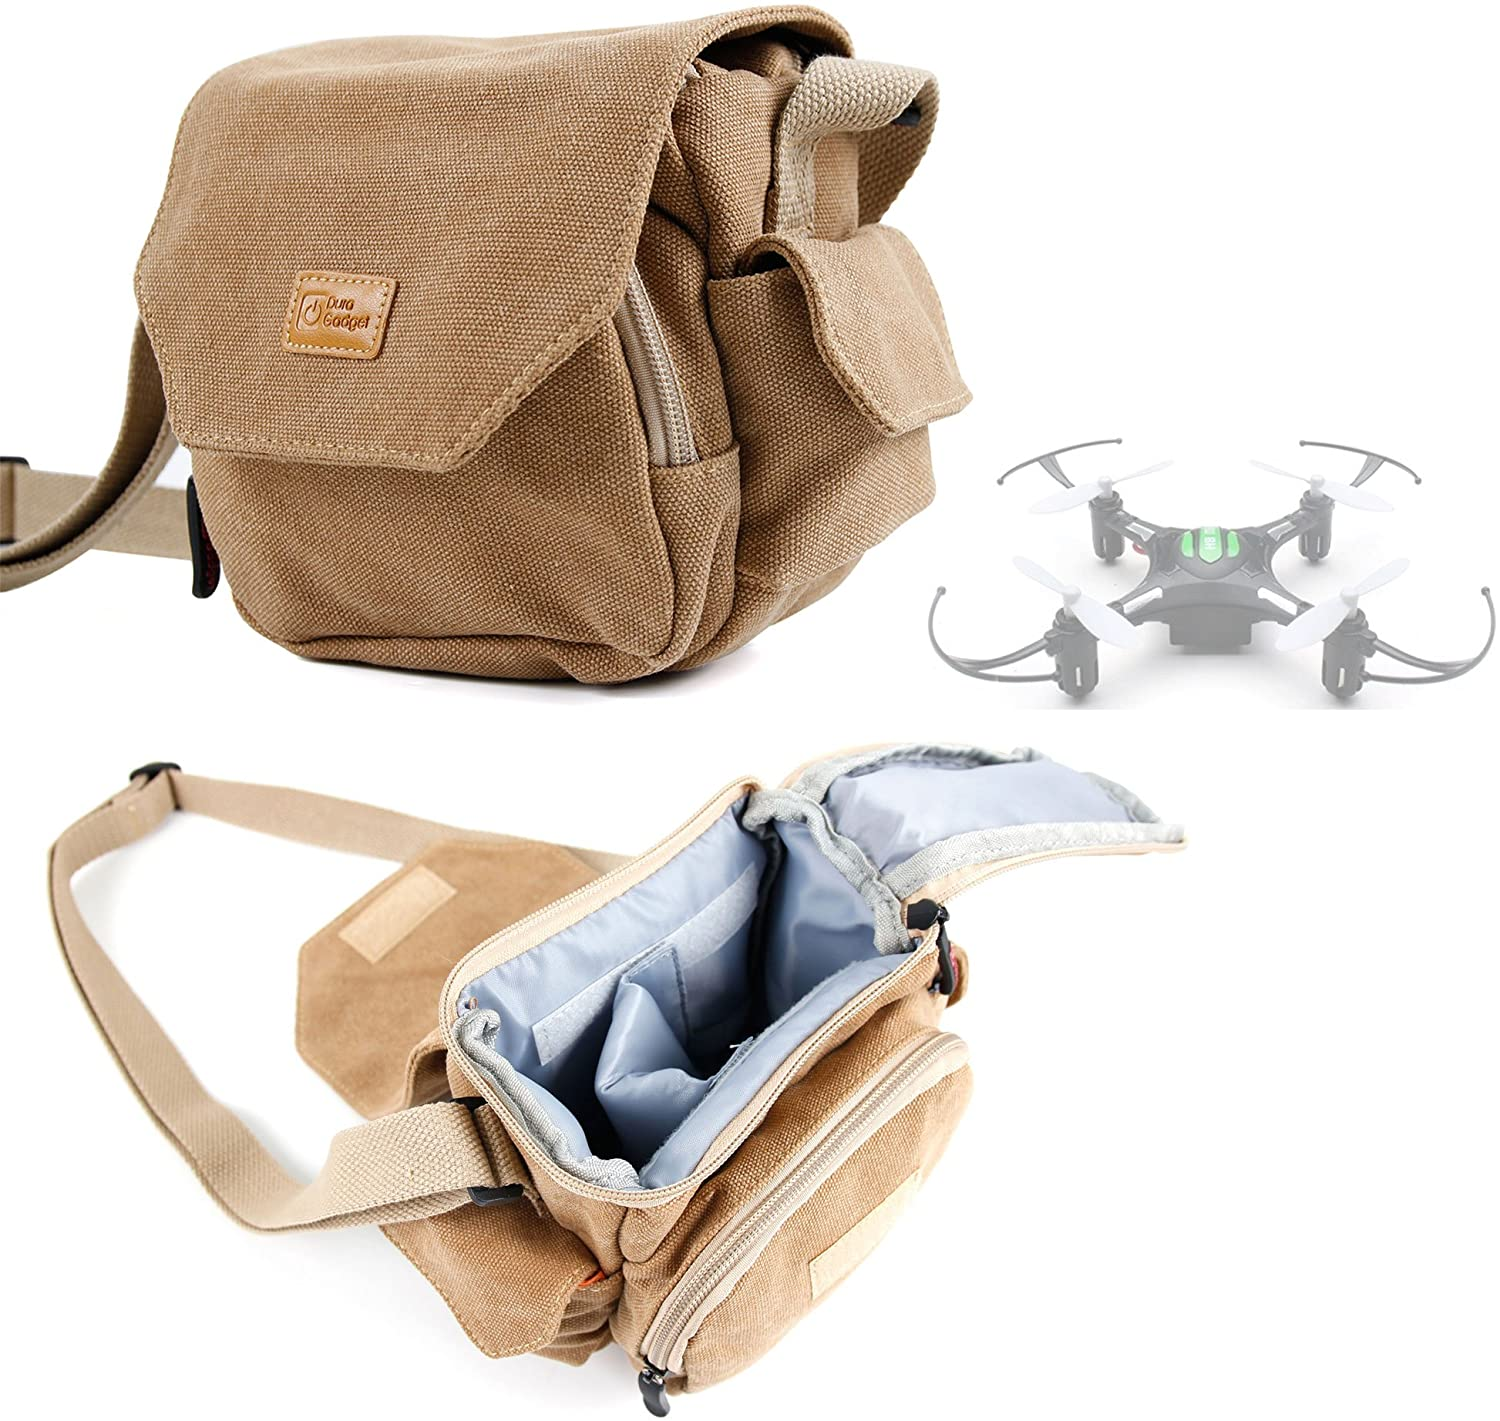 DURAGADGET Light Brown Medium Sized Canvas Carry Bag - Compatible with Eachine H8 Mini Quadcopter - with Multiple Pockets & Customizable Interior Compartment